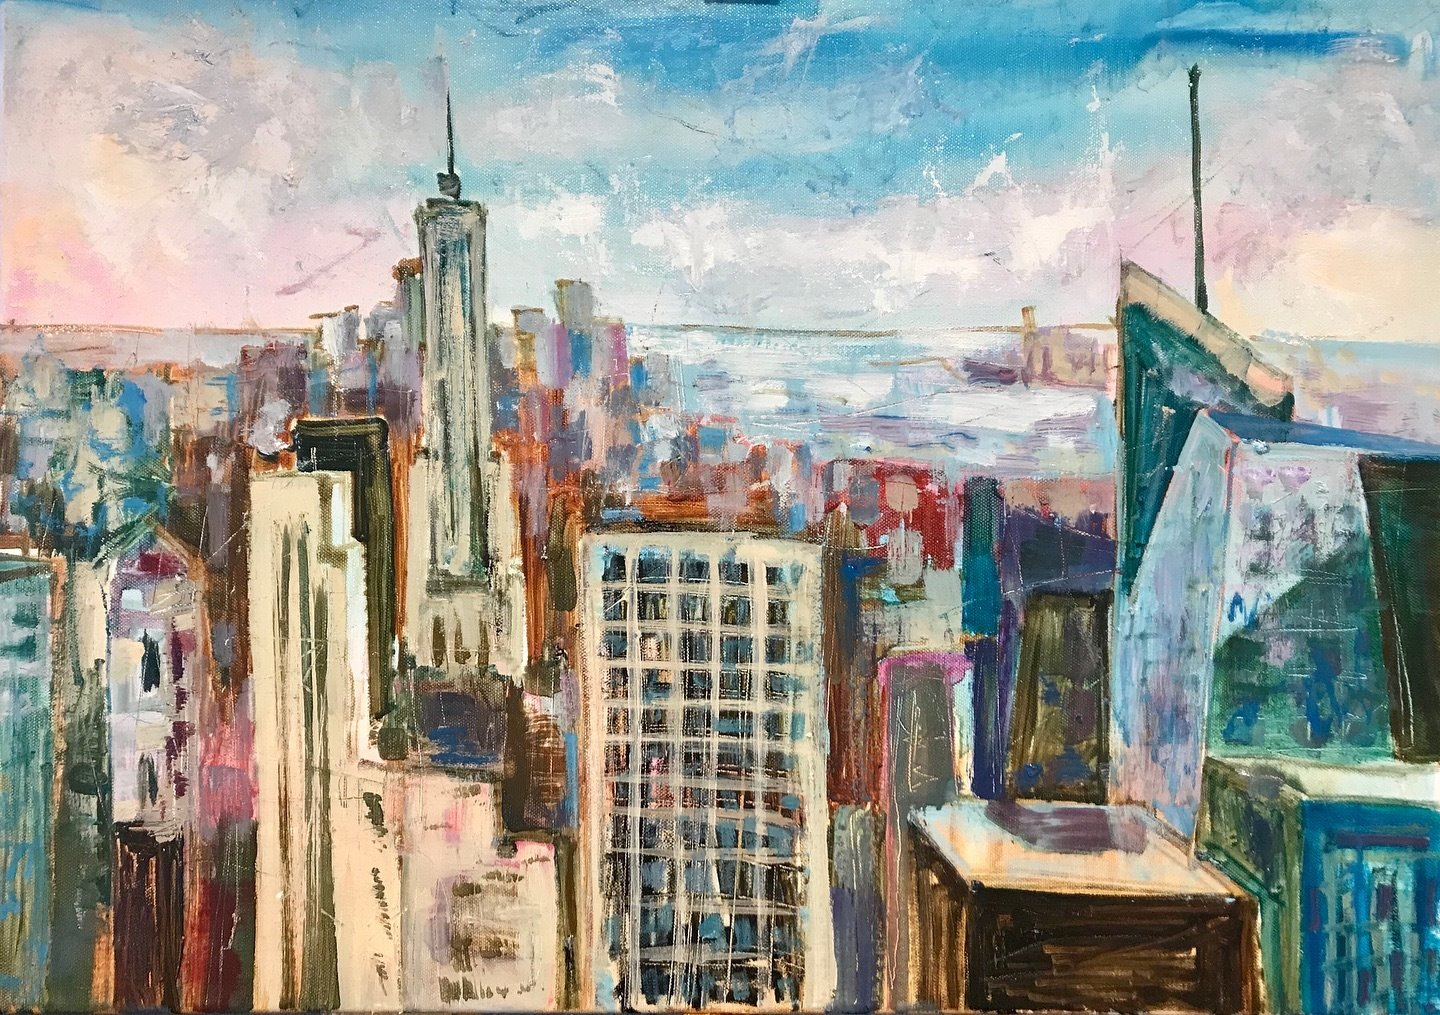 New York, oil, canvas, 2019